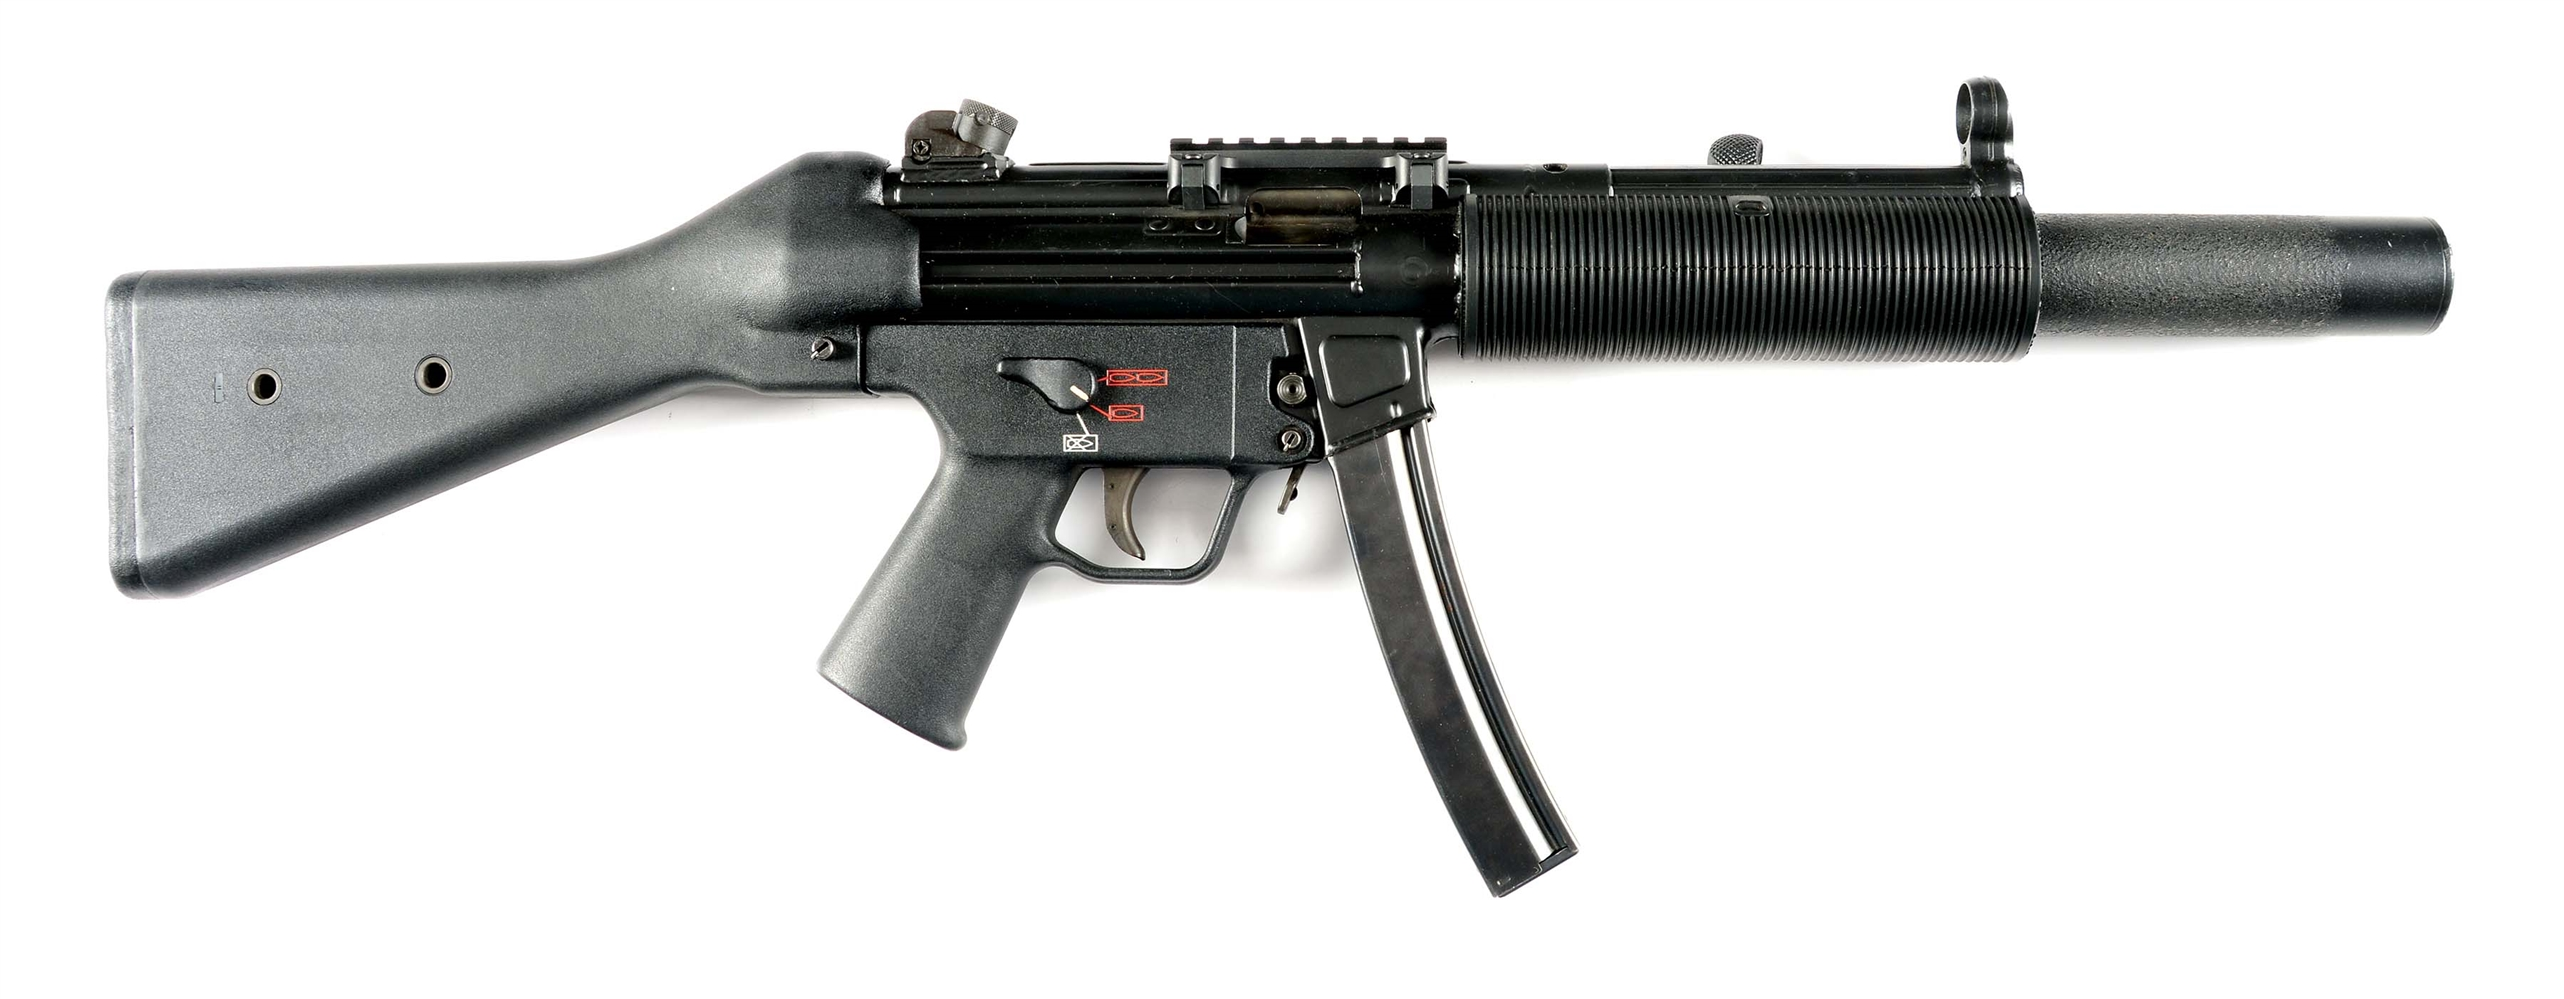 (N) H&K MP5SDA2 MACHINE GUN (PRE-86 DEALER SAMPLE).